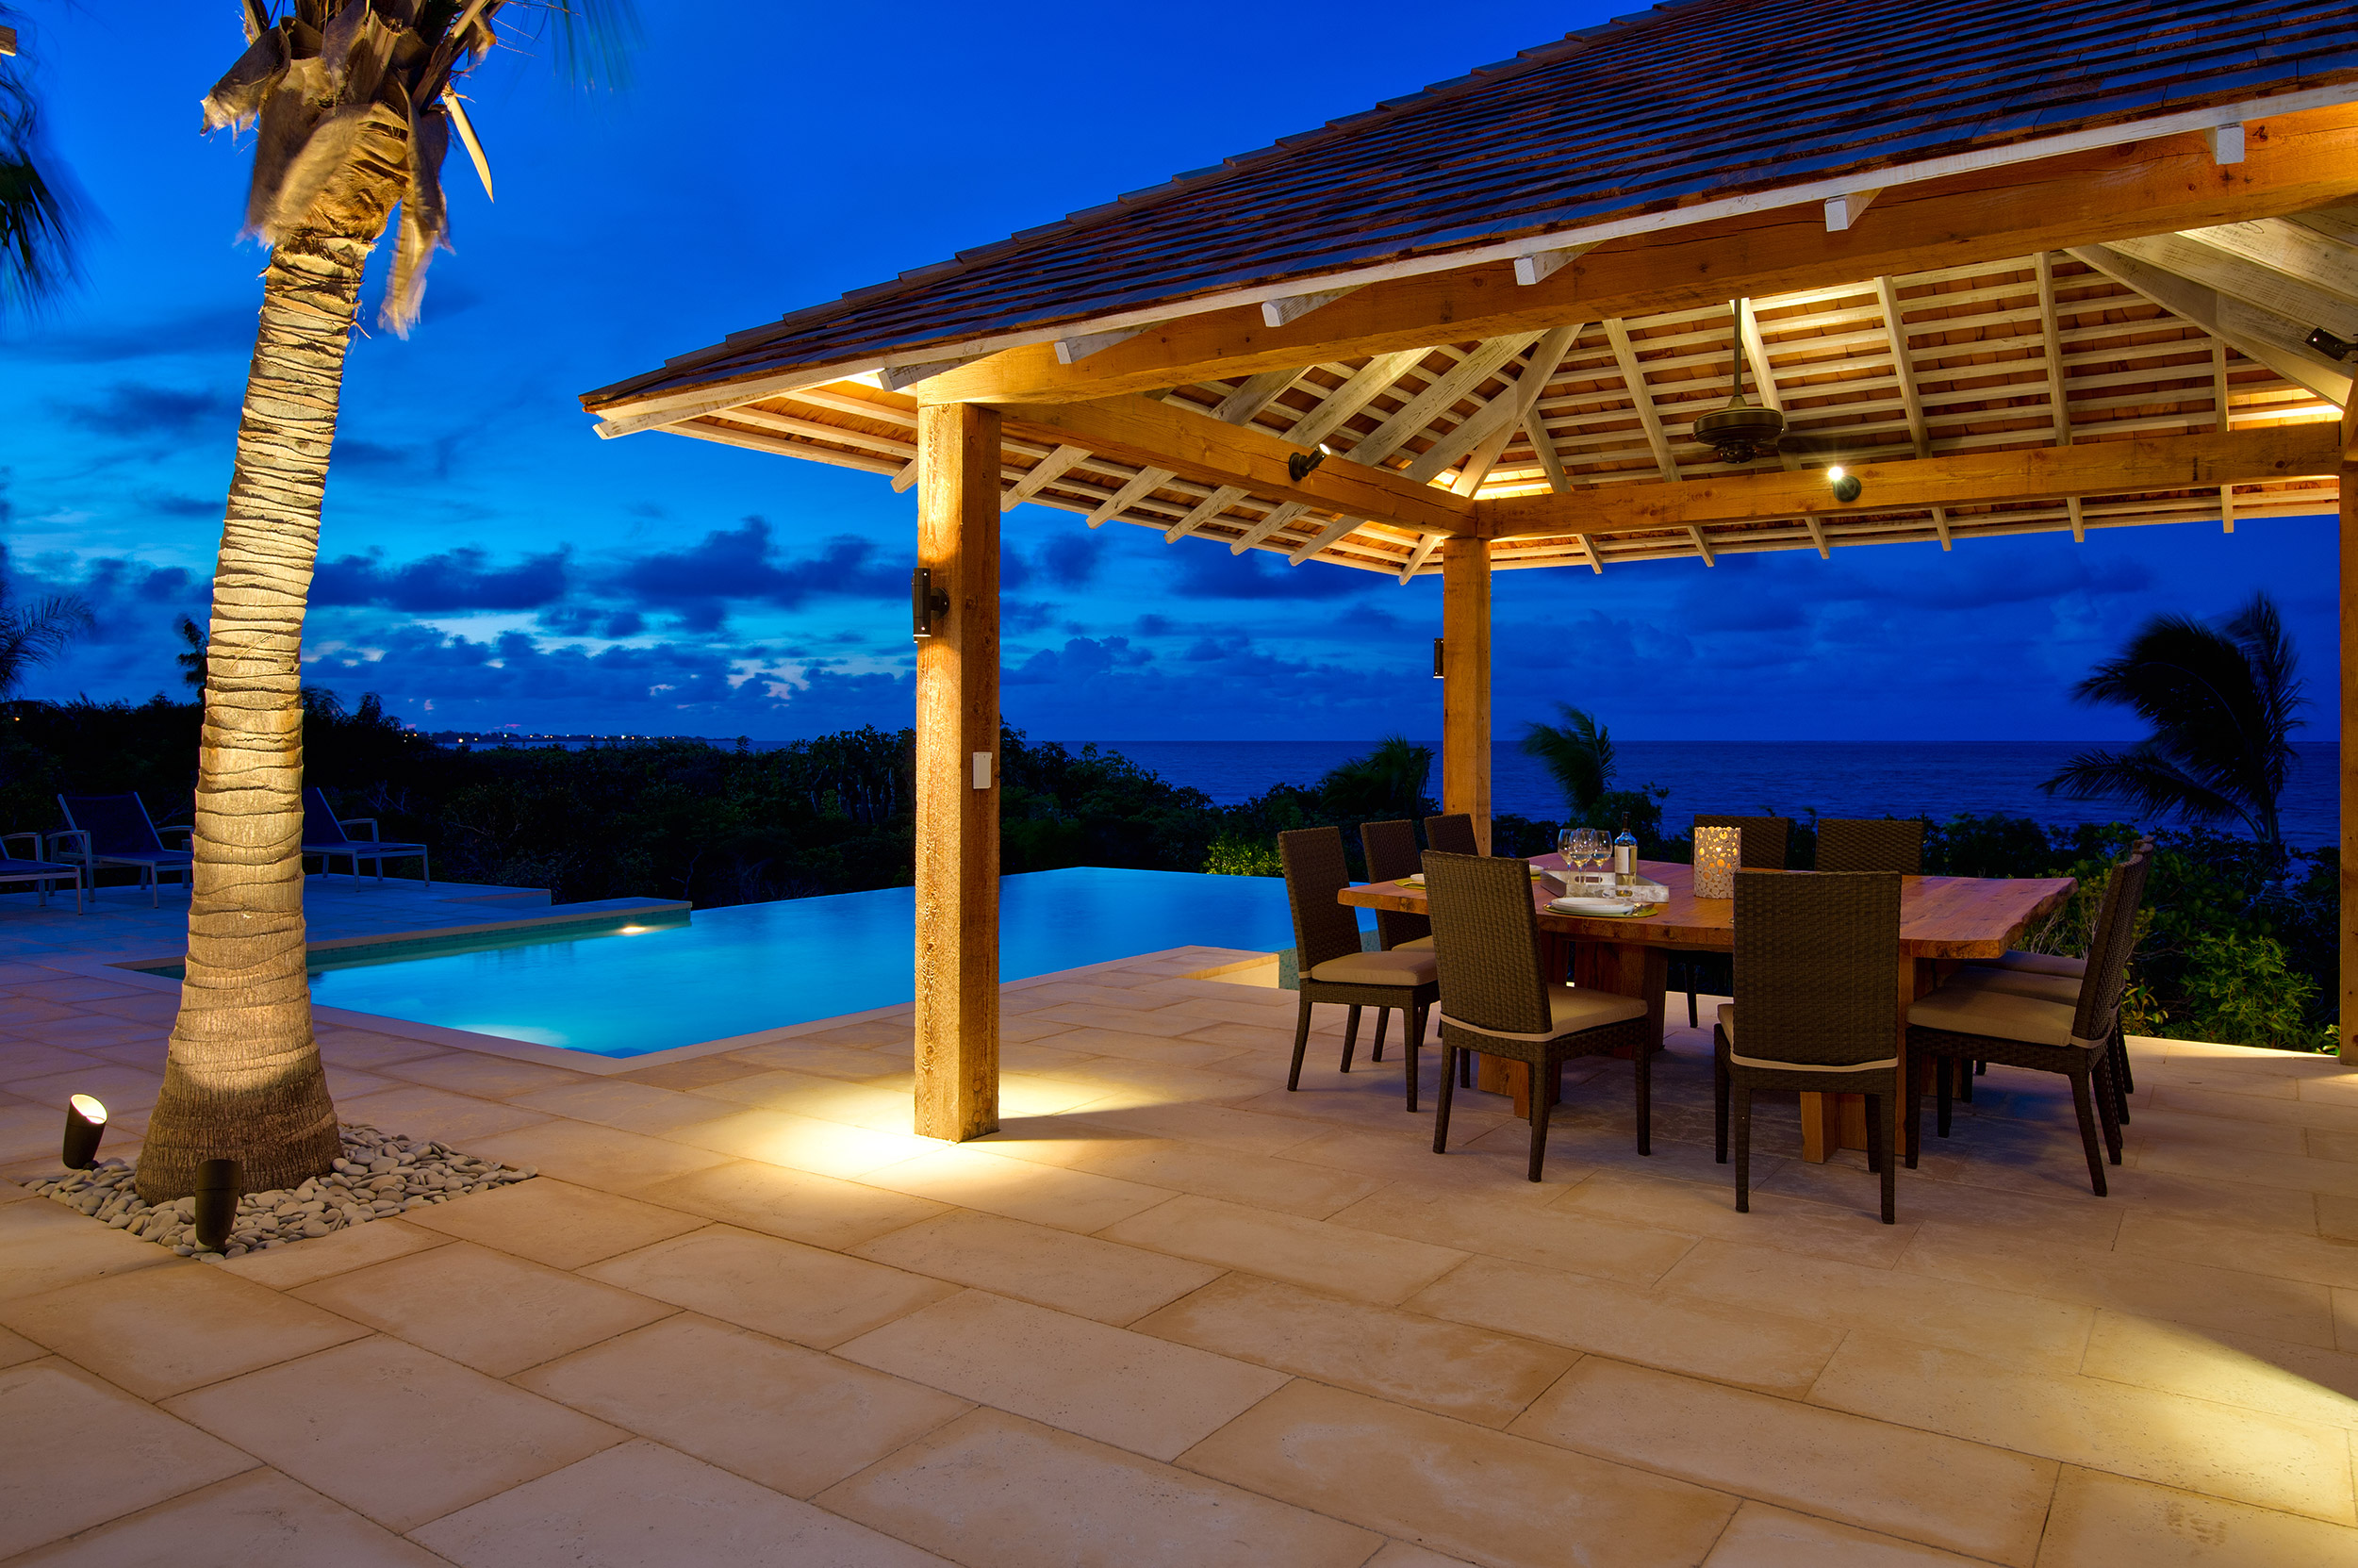 Castaway - view of the cabana and pool